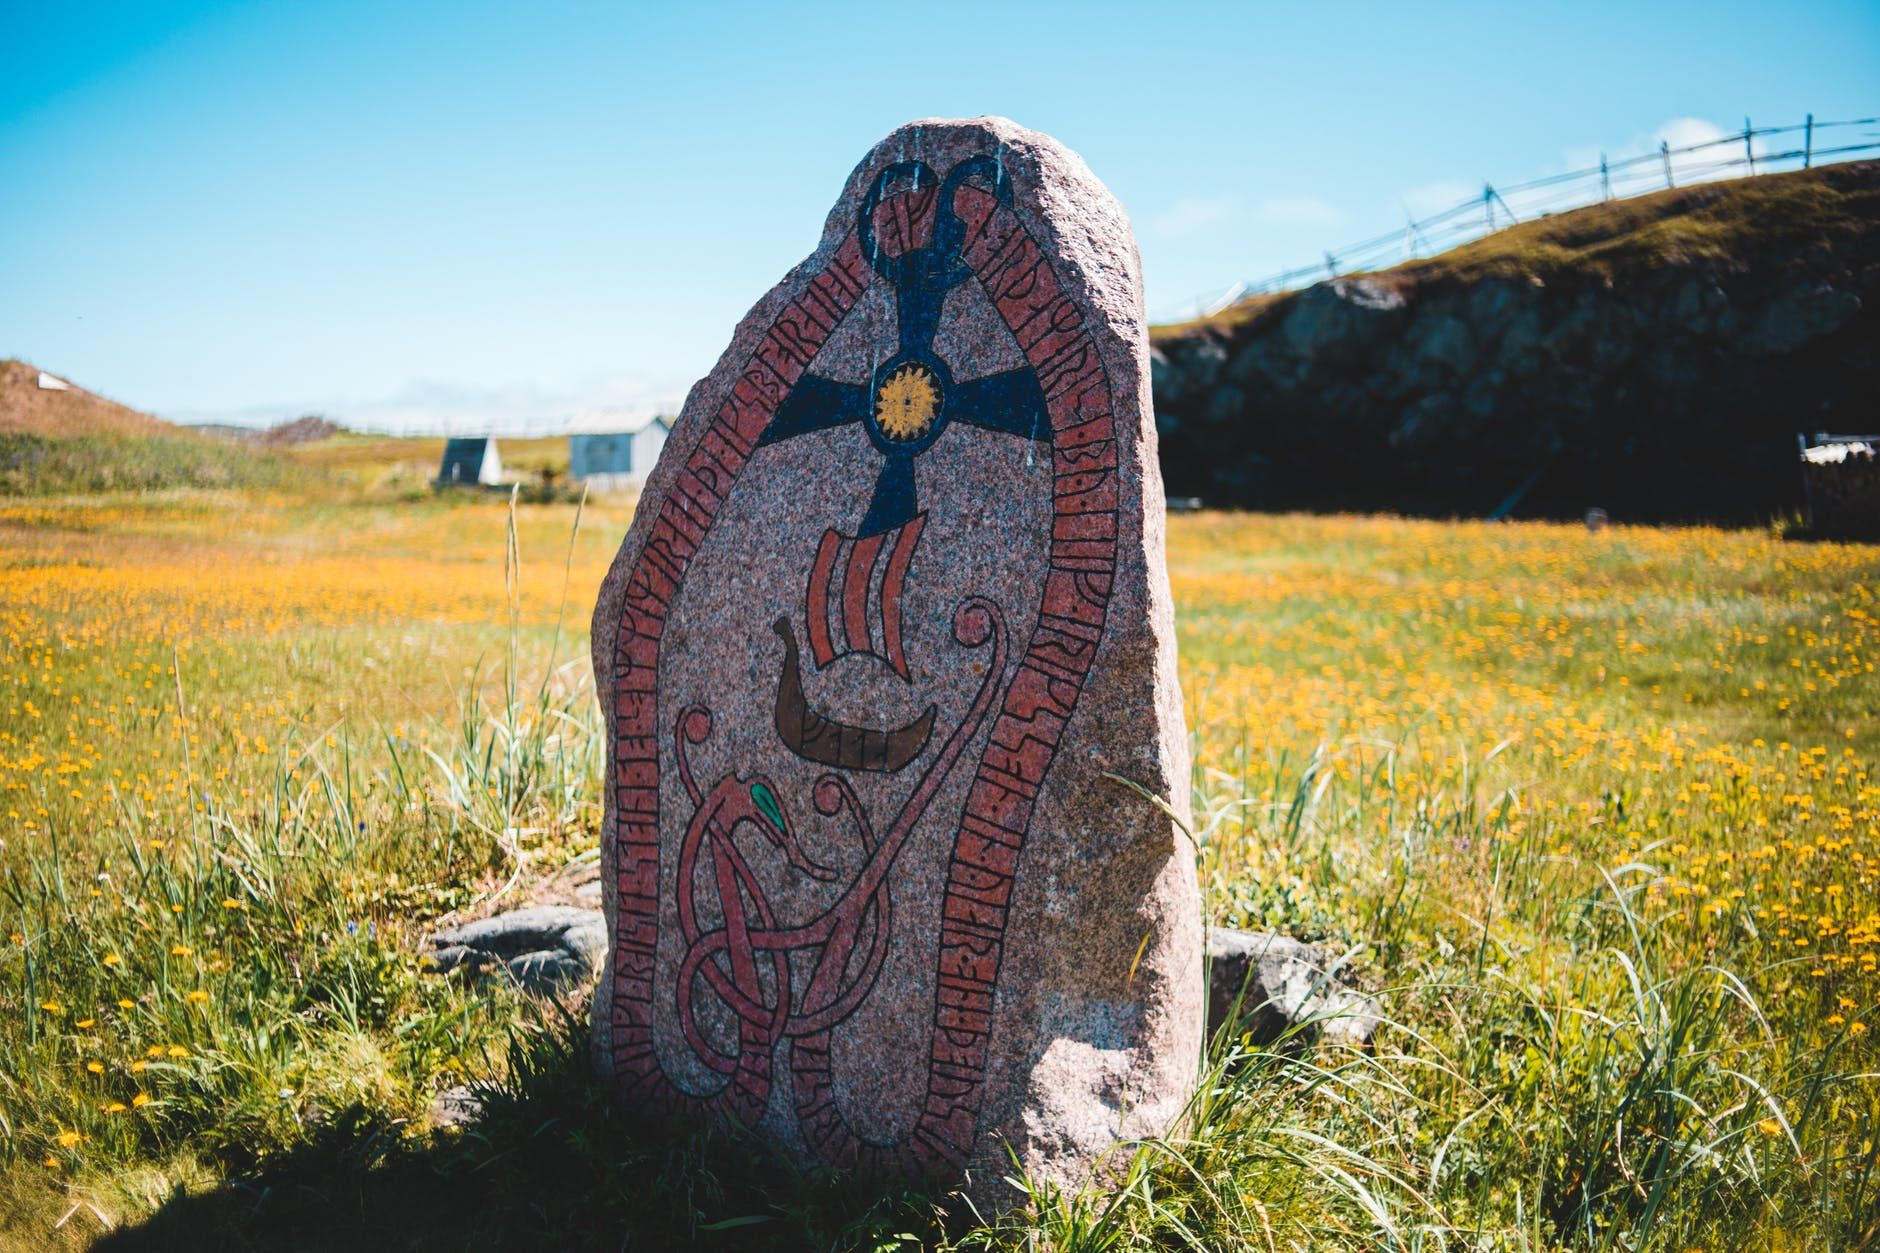 An ancient runestone stands in a meadow surrounded by flowers